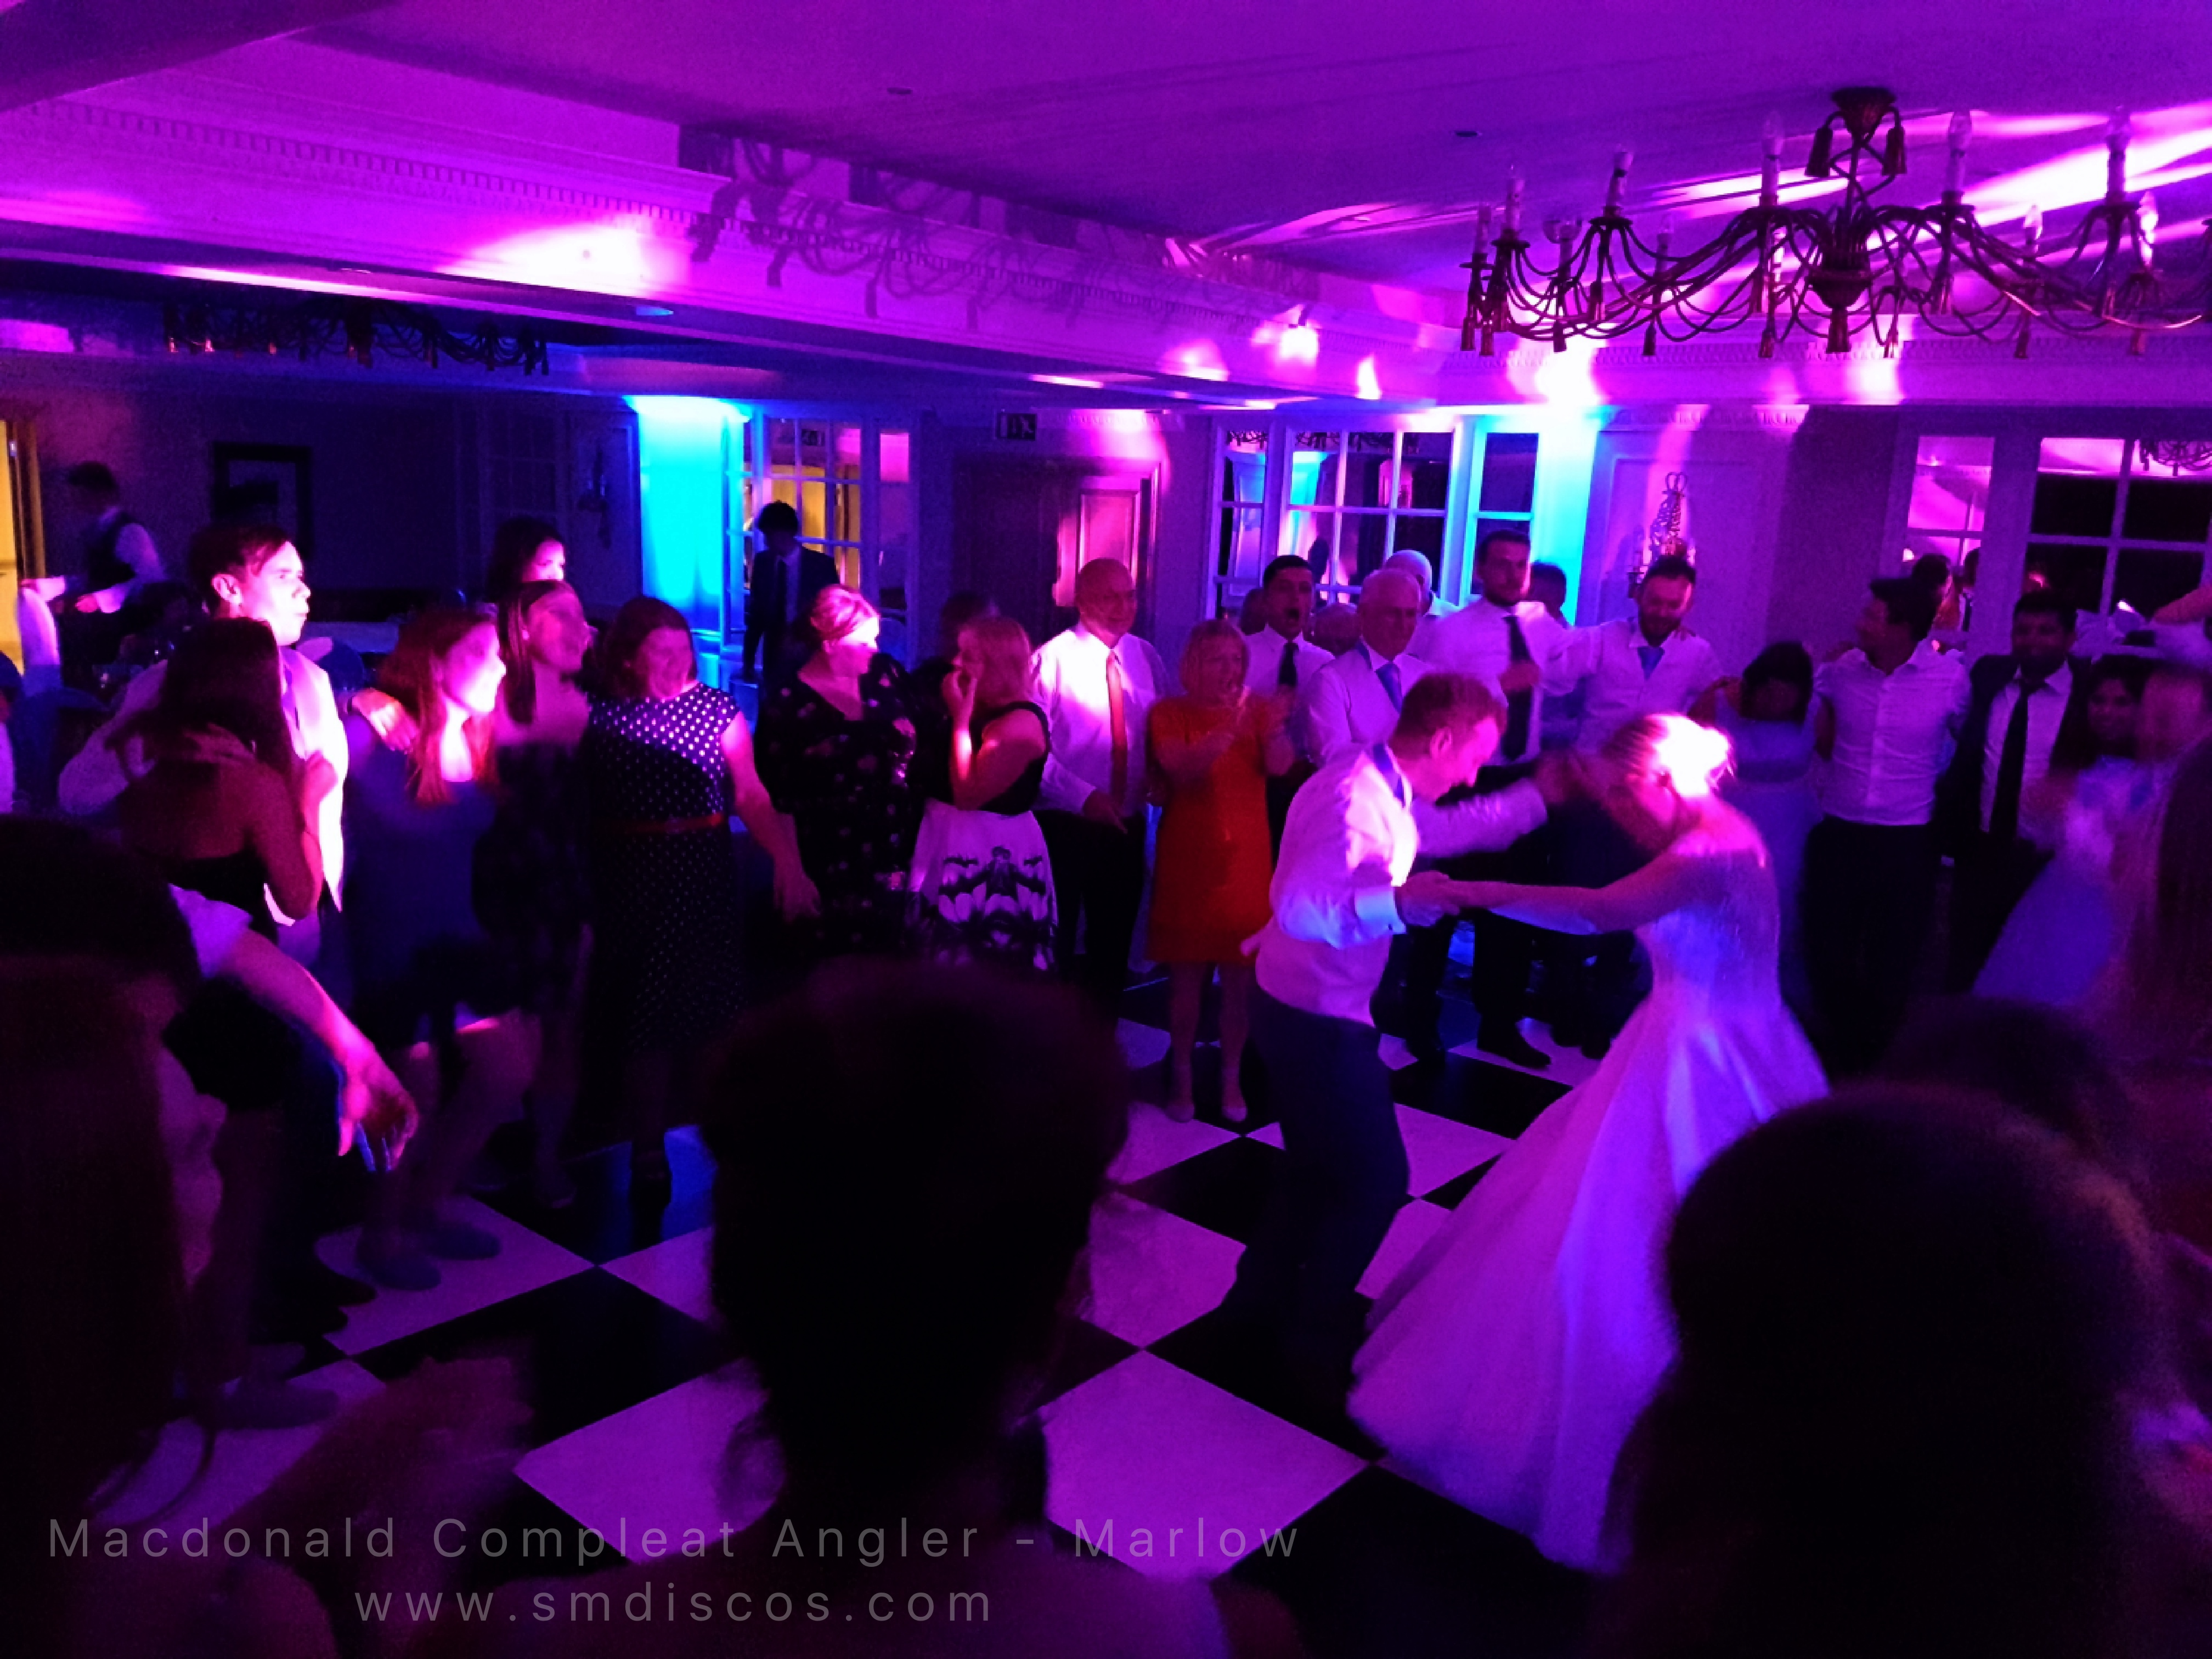 Macdonald Compleat Angler Marlow Wedding